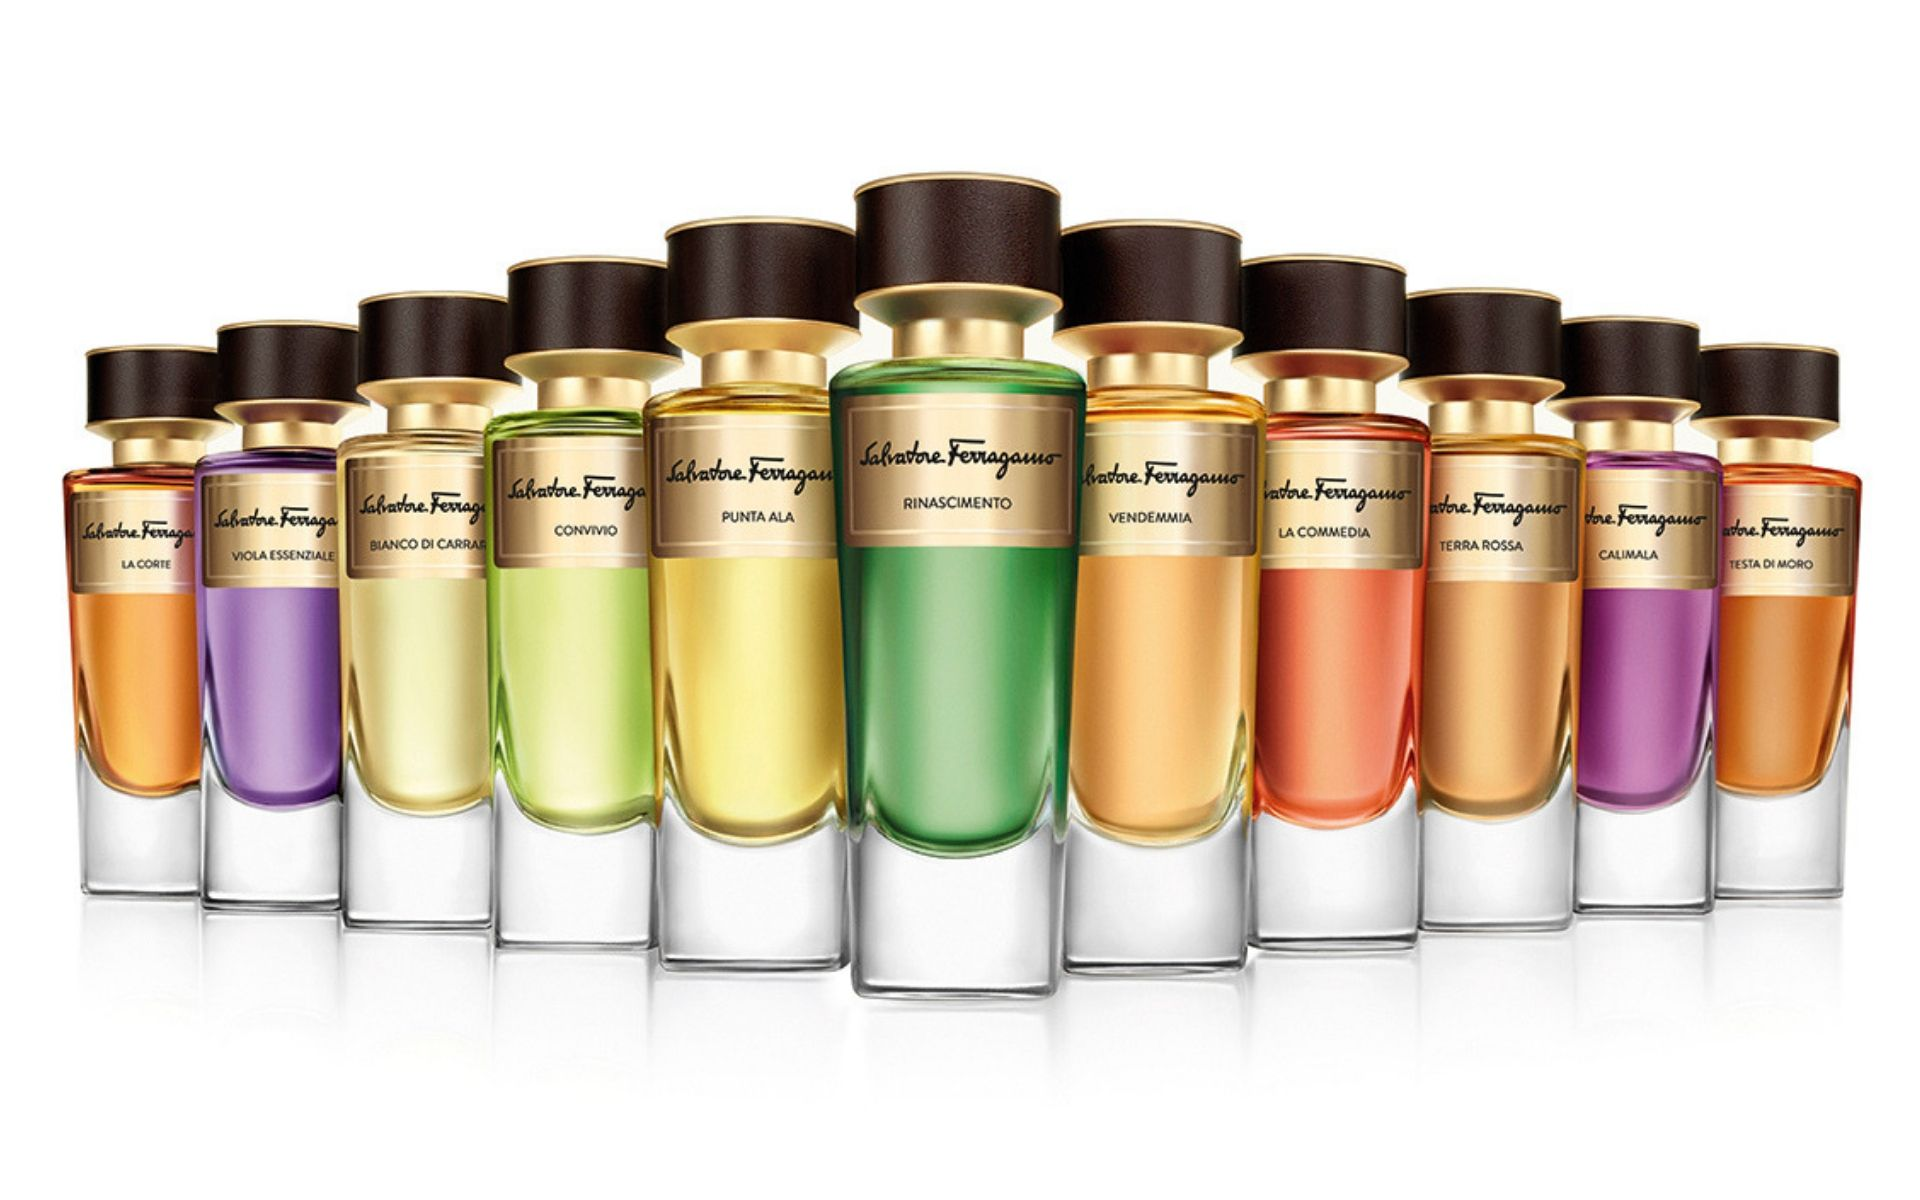 Tuscan Creations: These Salvatore Ferragamo Perfumes Tell The Stories Of Italy